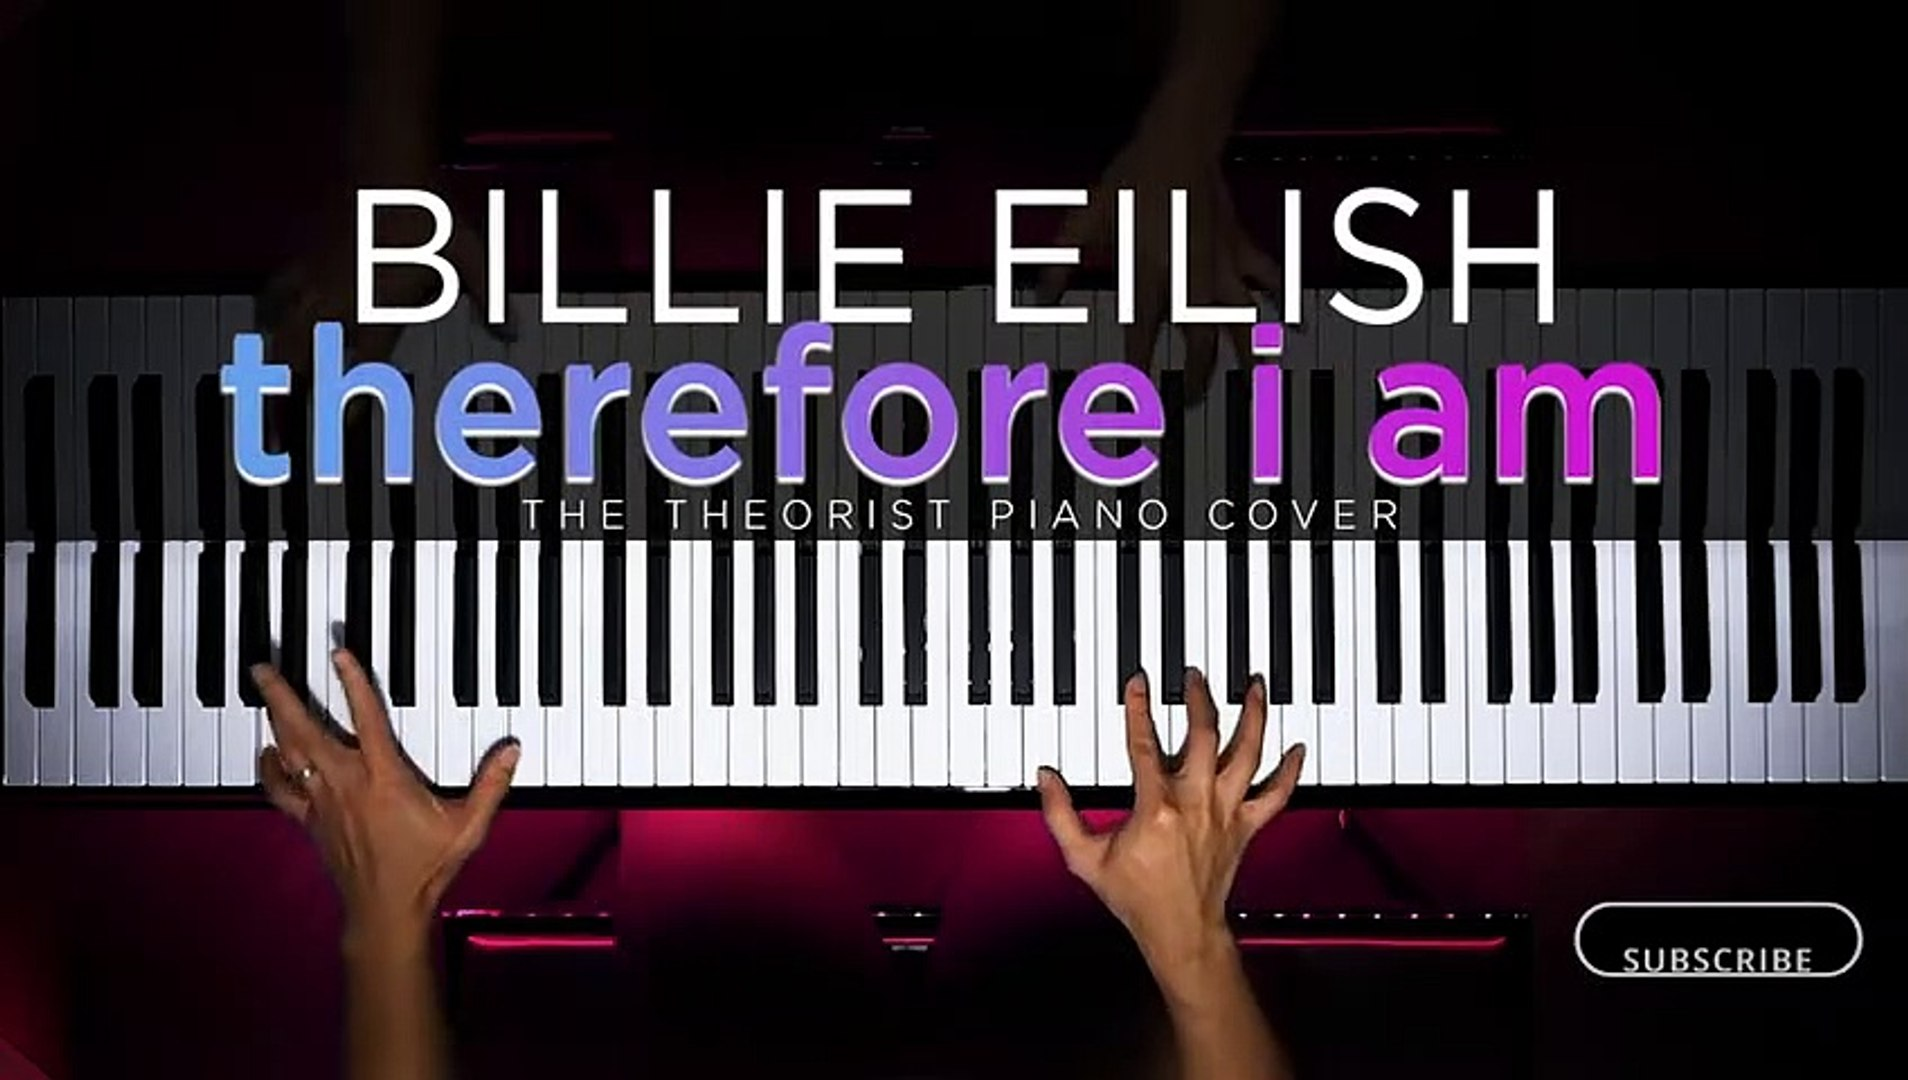 Billie Eilish - Therefore I am  Piano Cover